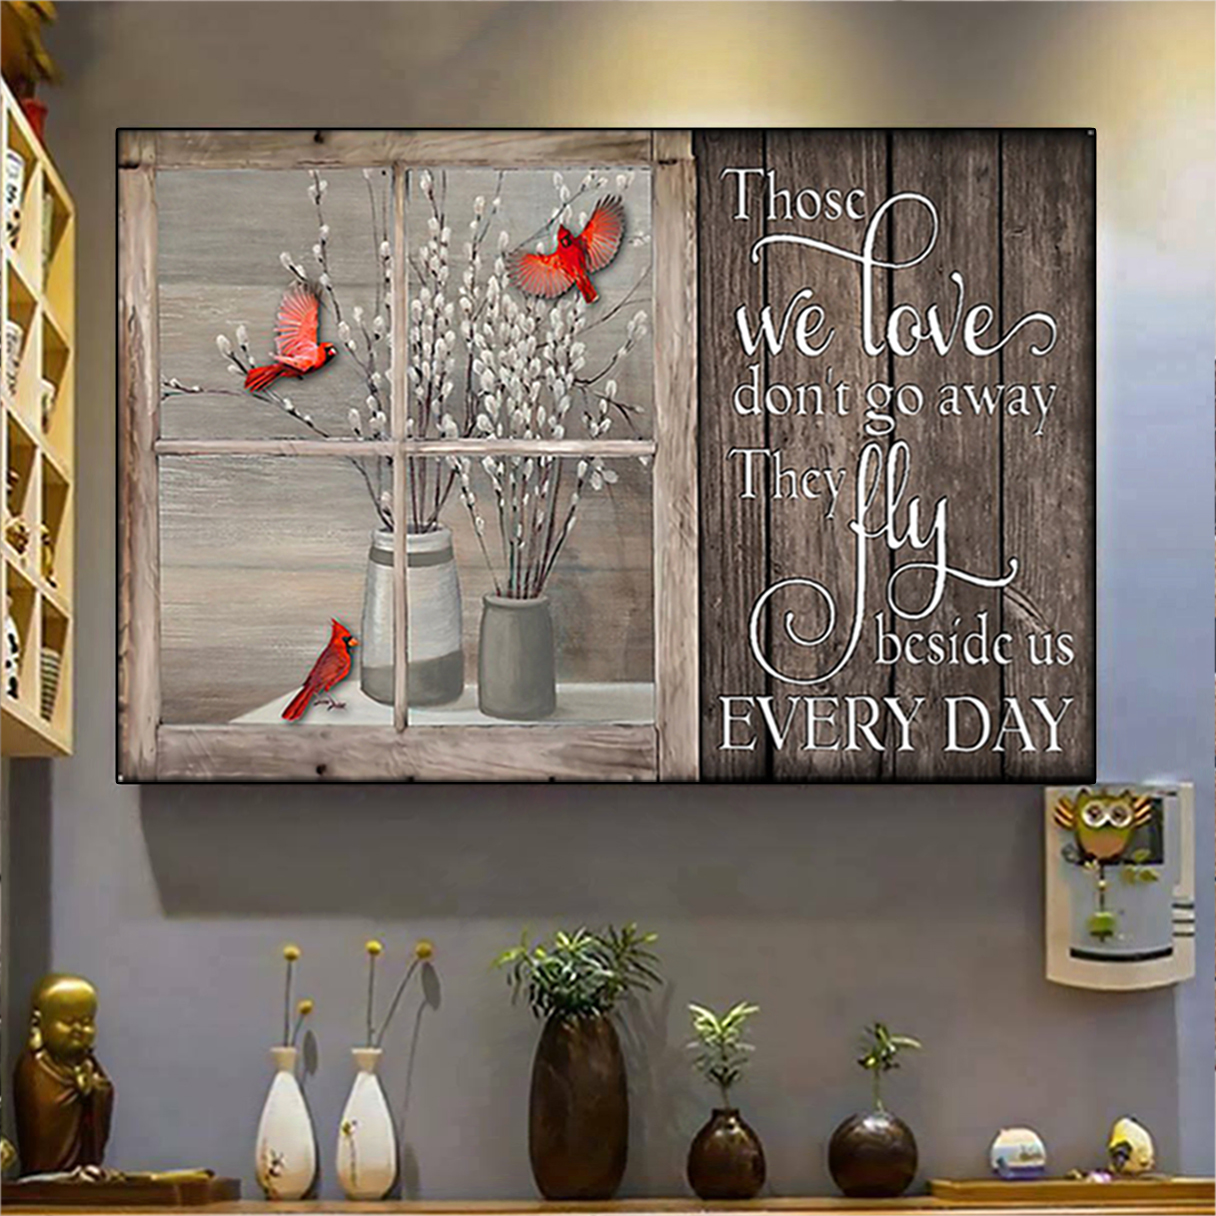 Cardinal window those we love don't go away poster A2